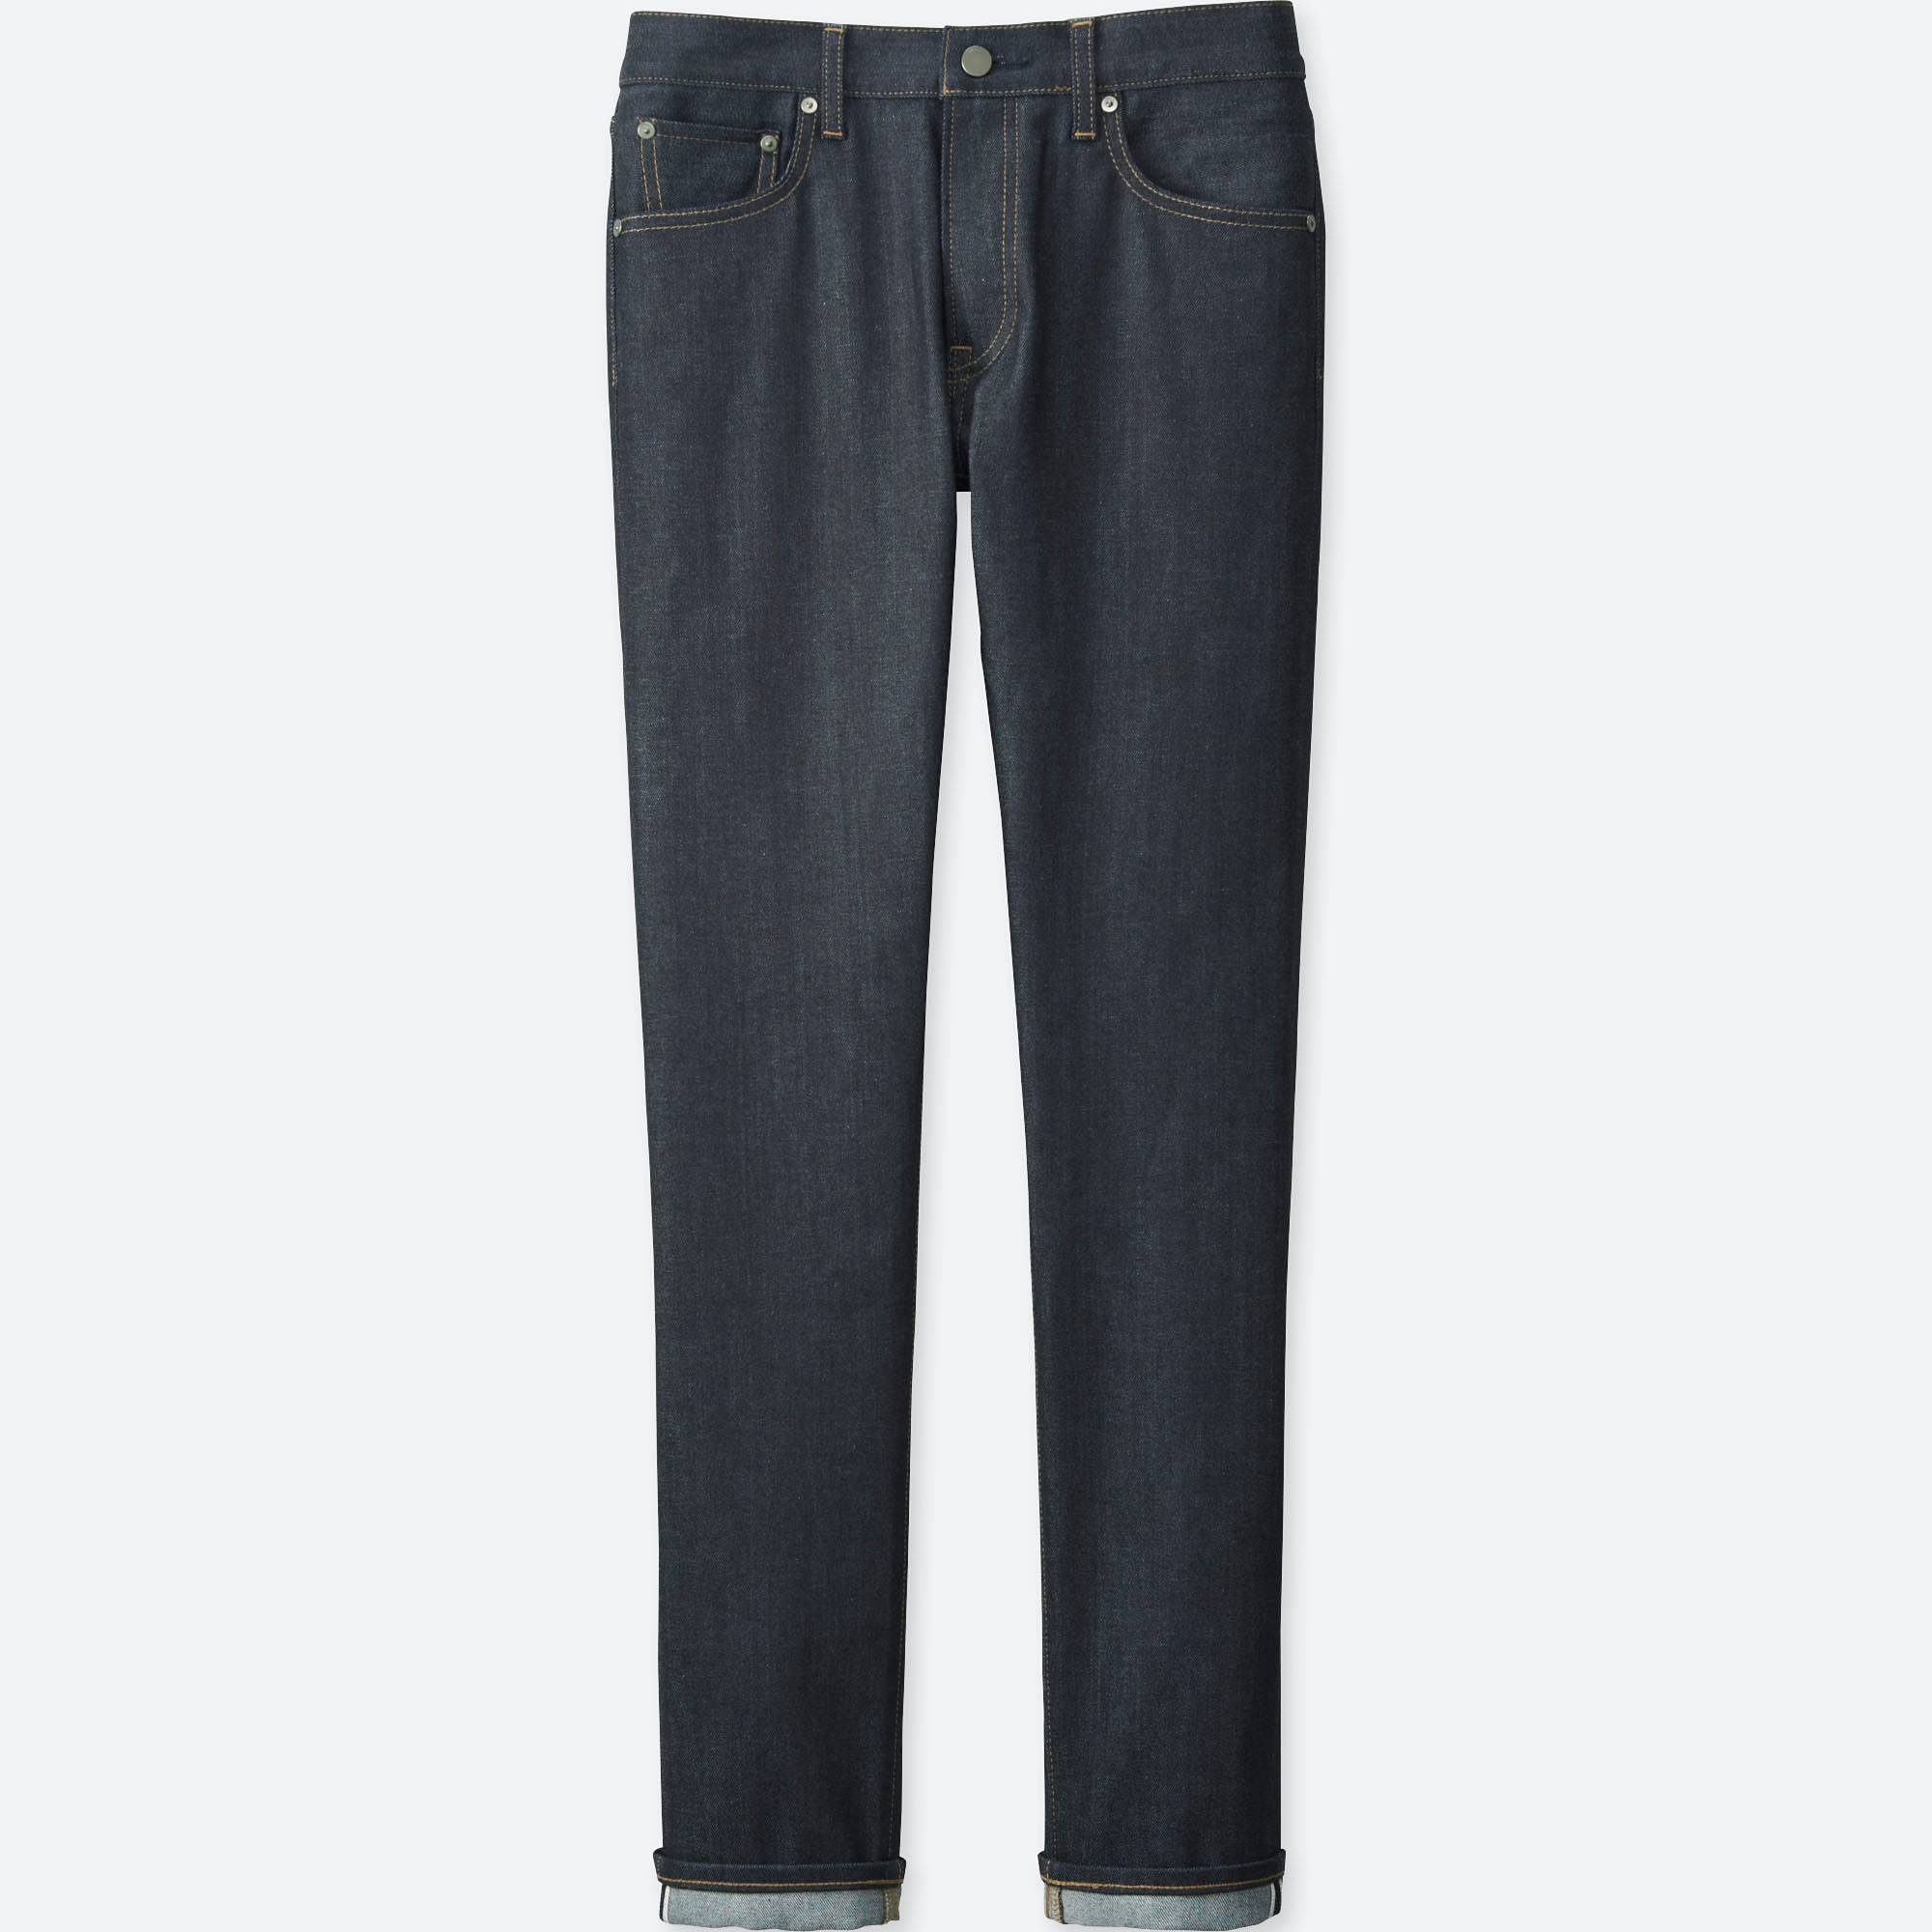 Skinny fit jeans uniqlo